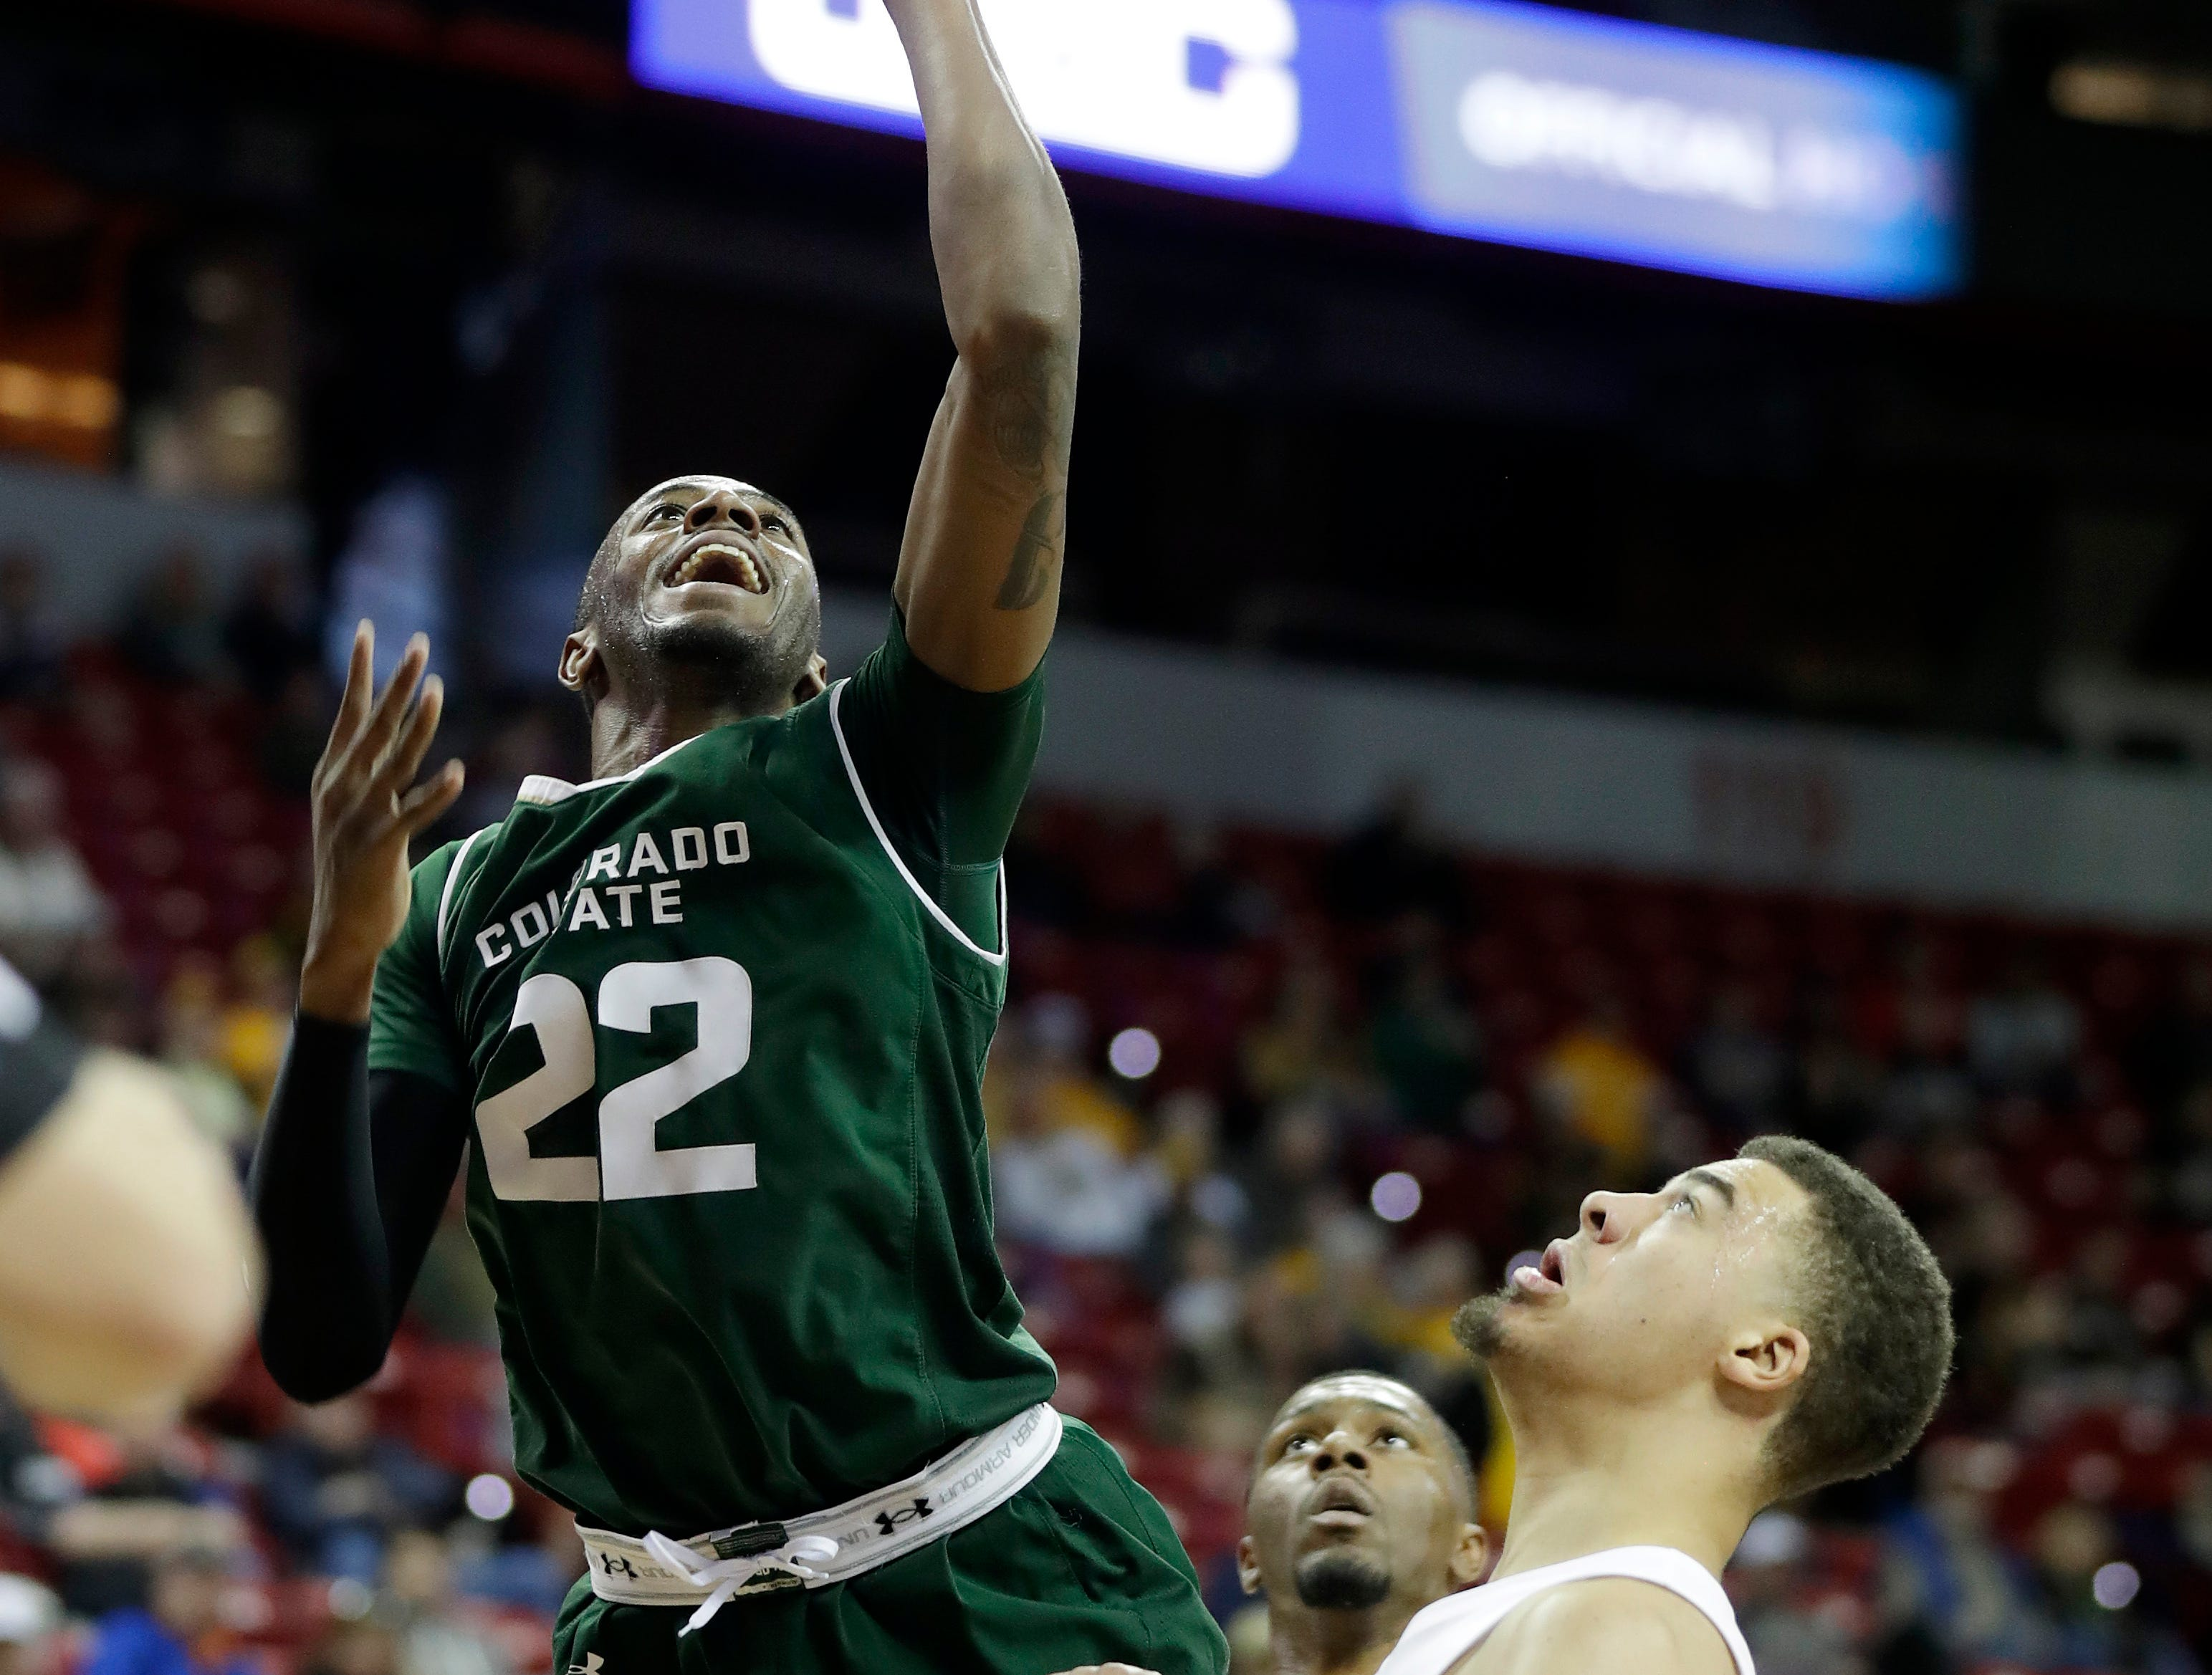 Colorado State's J.D. Paige shoots over Boise State's Alex Hobbs during the second half of an NCAA college basketball game in the Mountain West Conference tournament Wednesday, March 13, 2019, in Las Vegas.